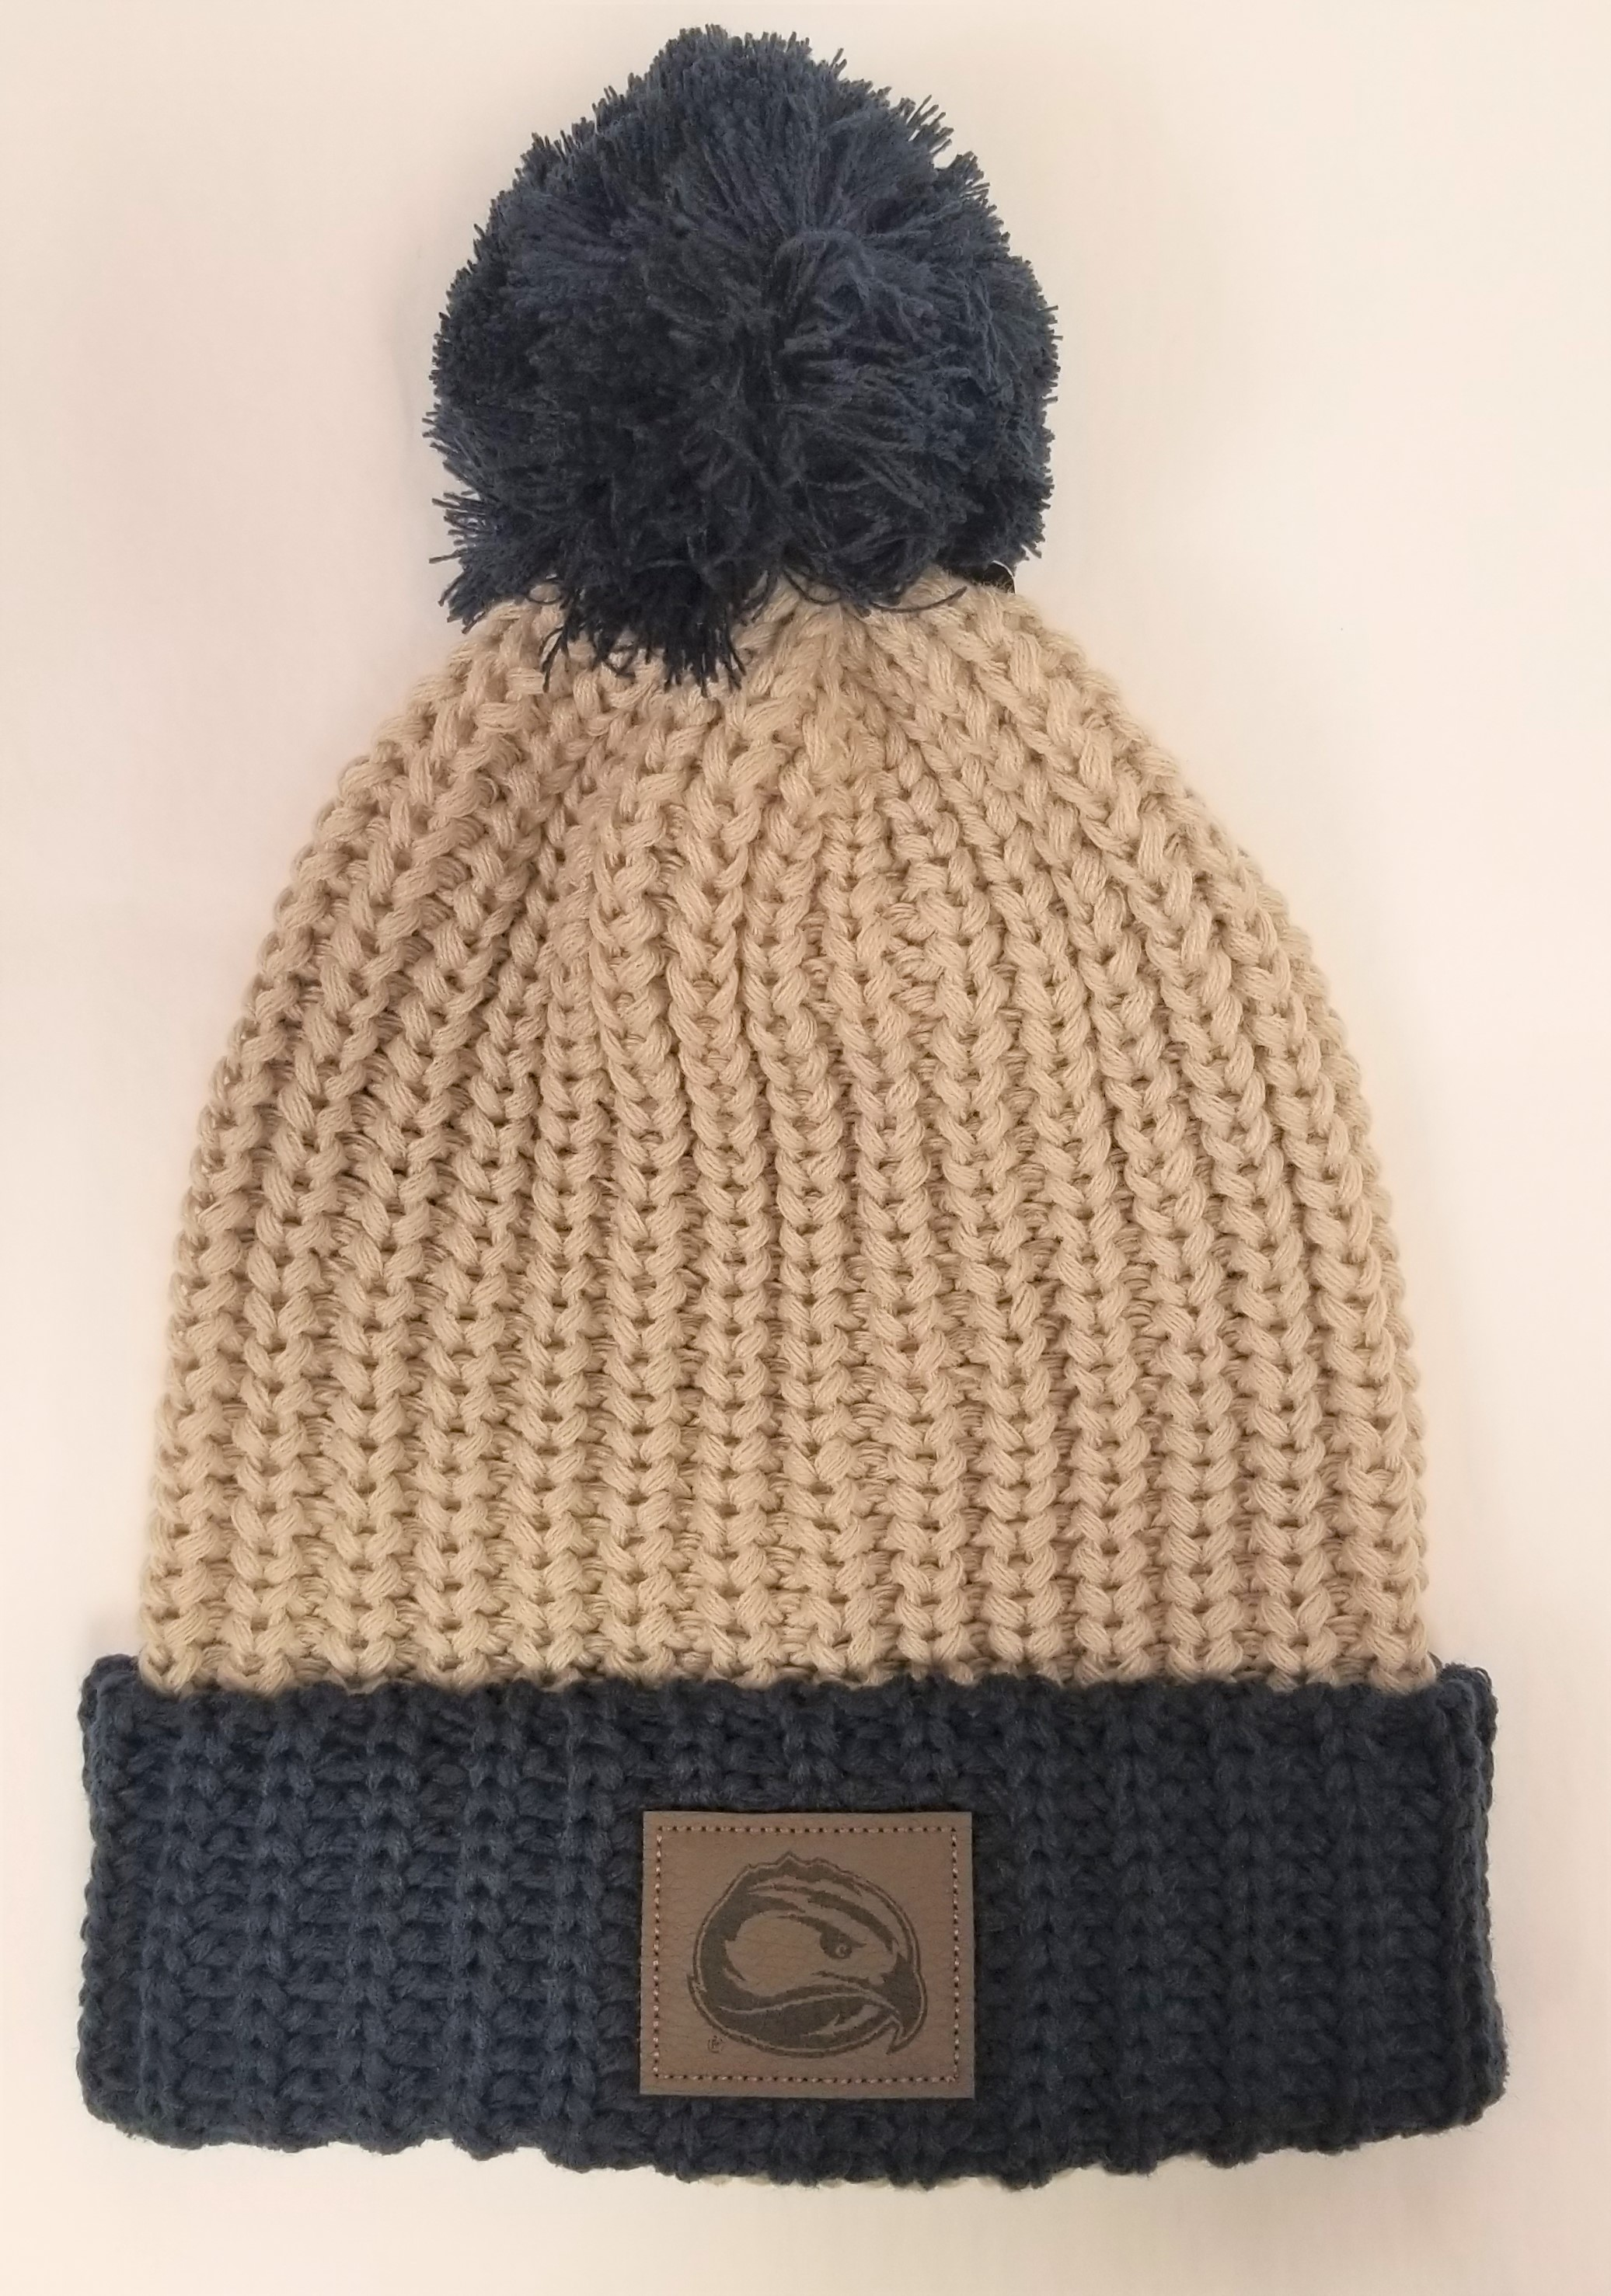 Leather Skyhawk Knit Beanie w/ Pom Pom